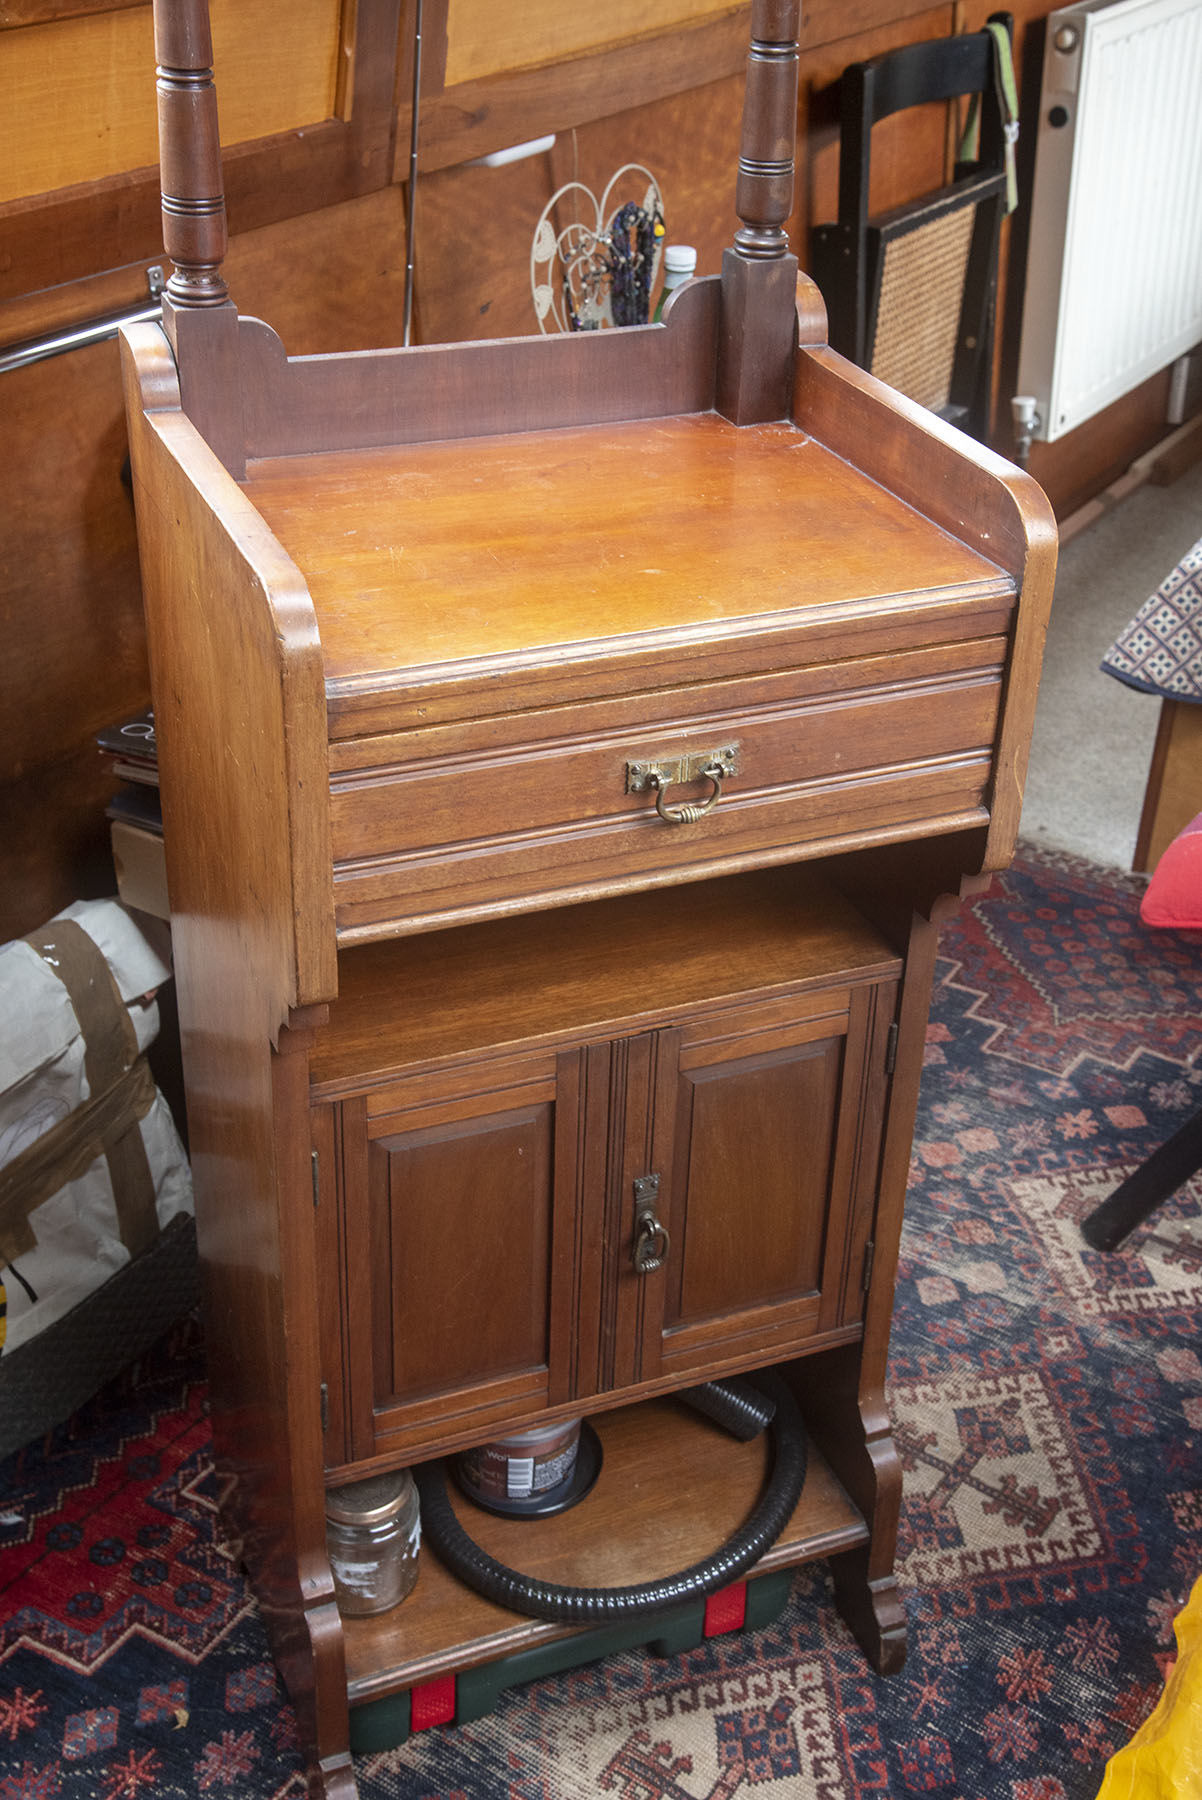 Best Furniture Polish for Antiques Unique Best Surface Finish for Antique Wood Cabinet Used In A